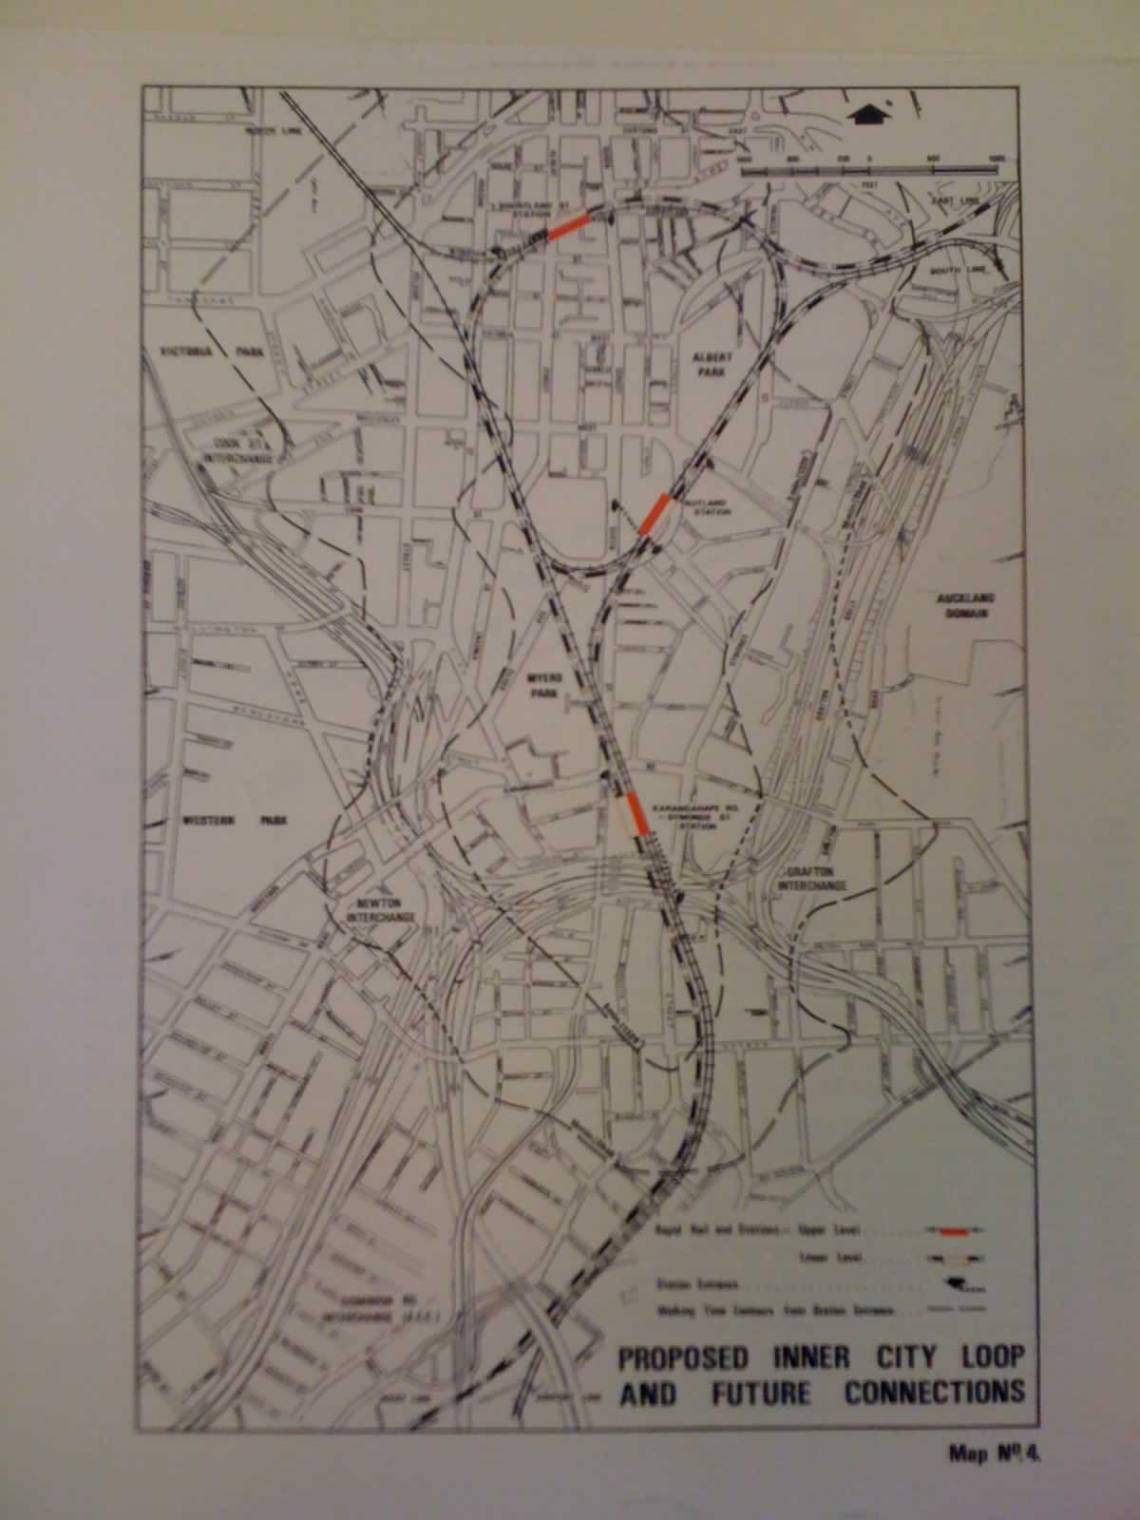 The City Loop proposal from 1972. Click to view full detail.